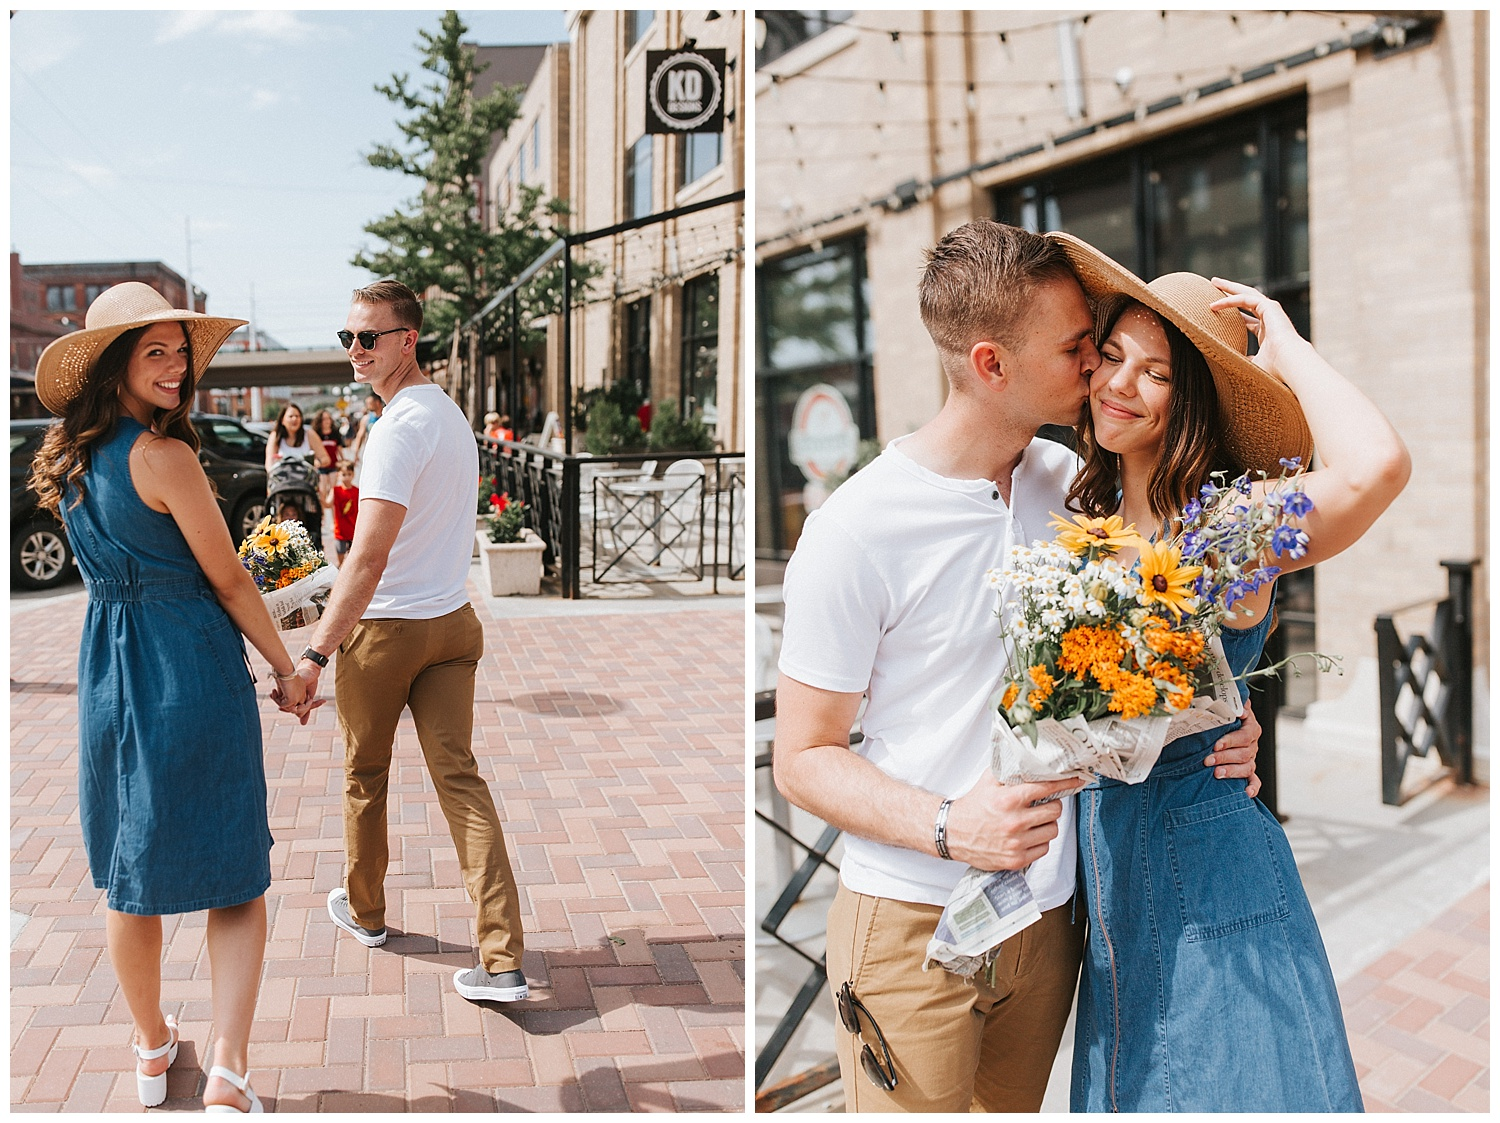 adventurous_photographer_farmers_market_engagement_session_love_midwest_travel_destination_photographer_haley_chicoine_0004.jpg